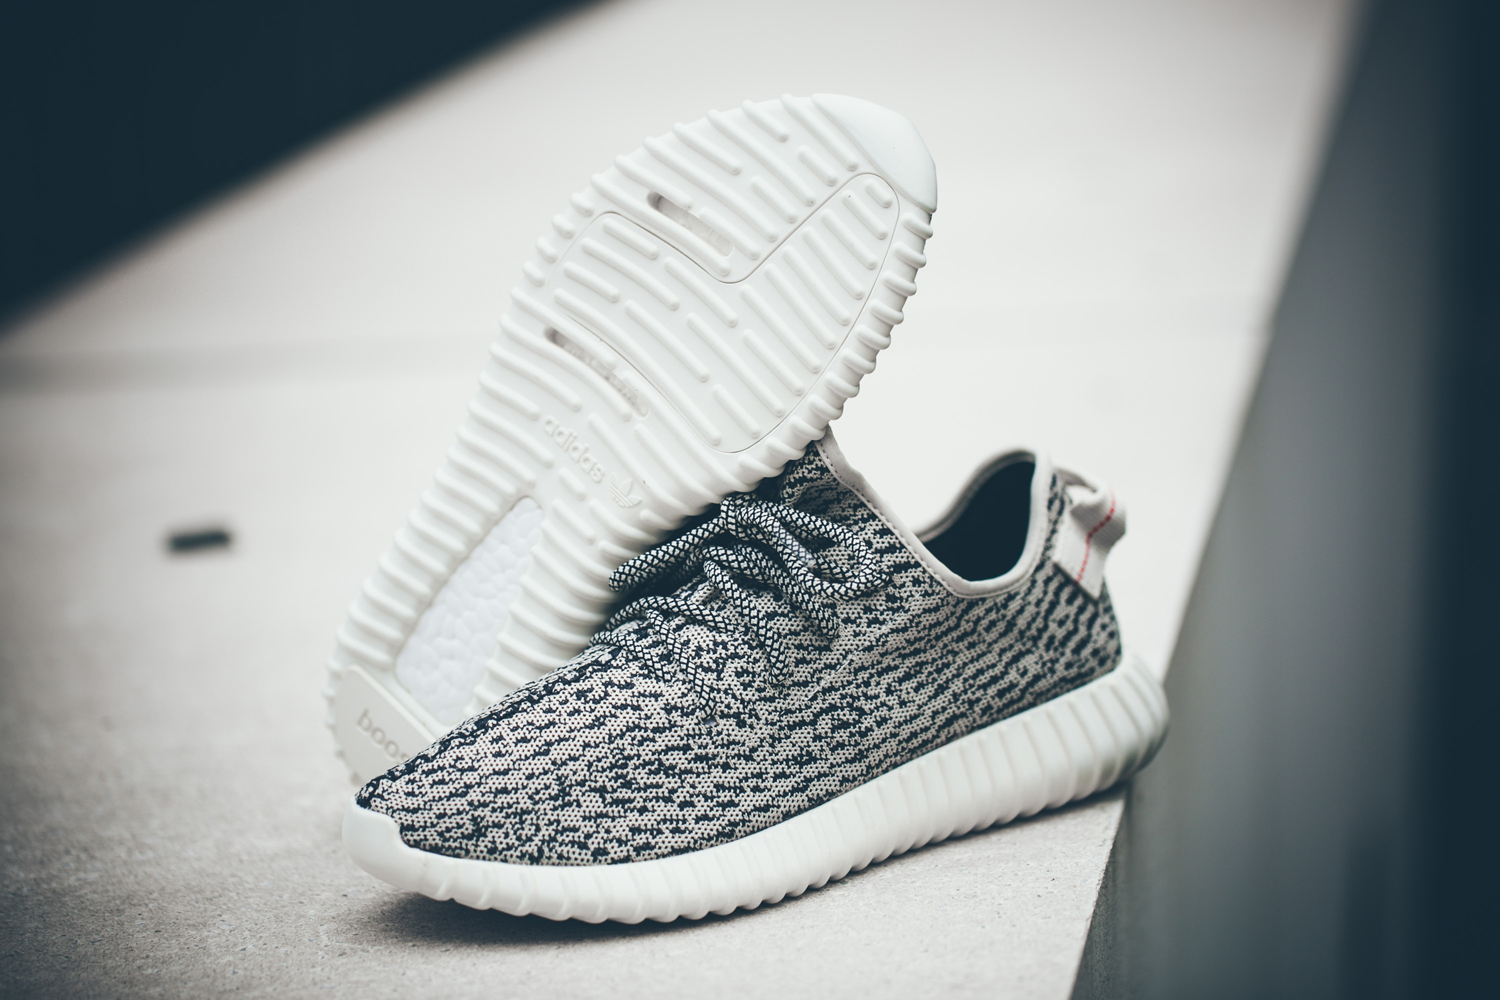 Adidas Yeezy Boost 350 Moonrock For Sale Release Date